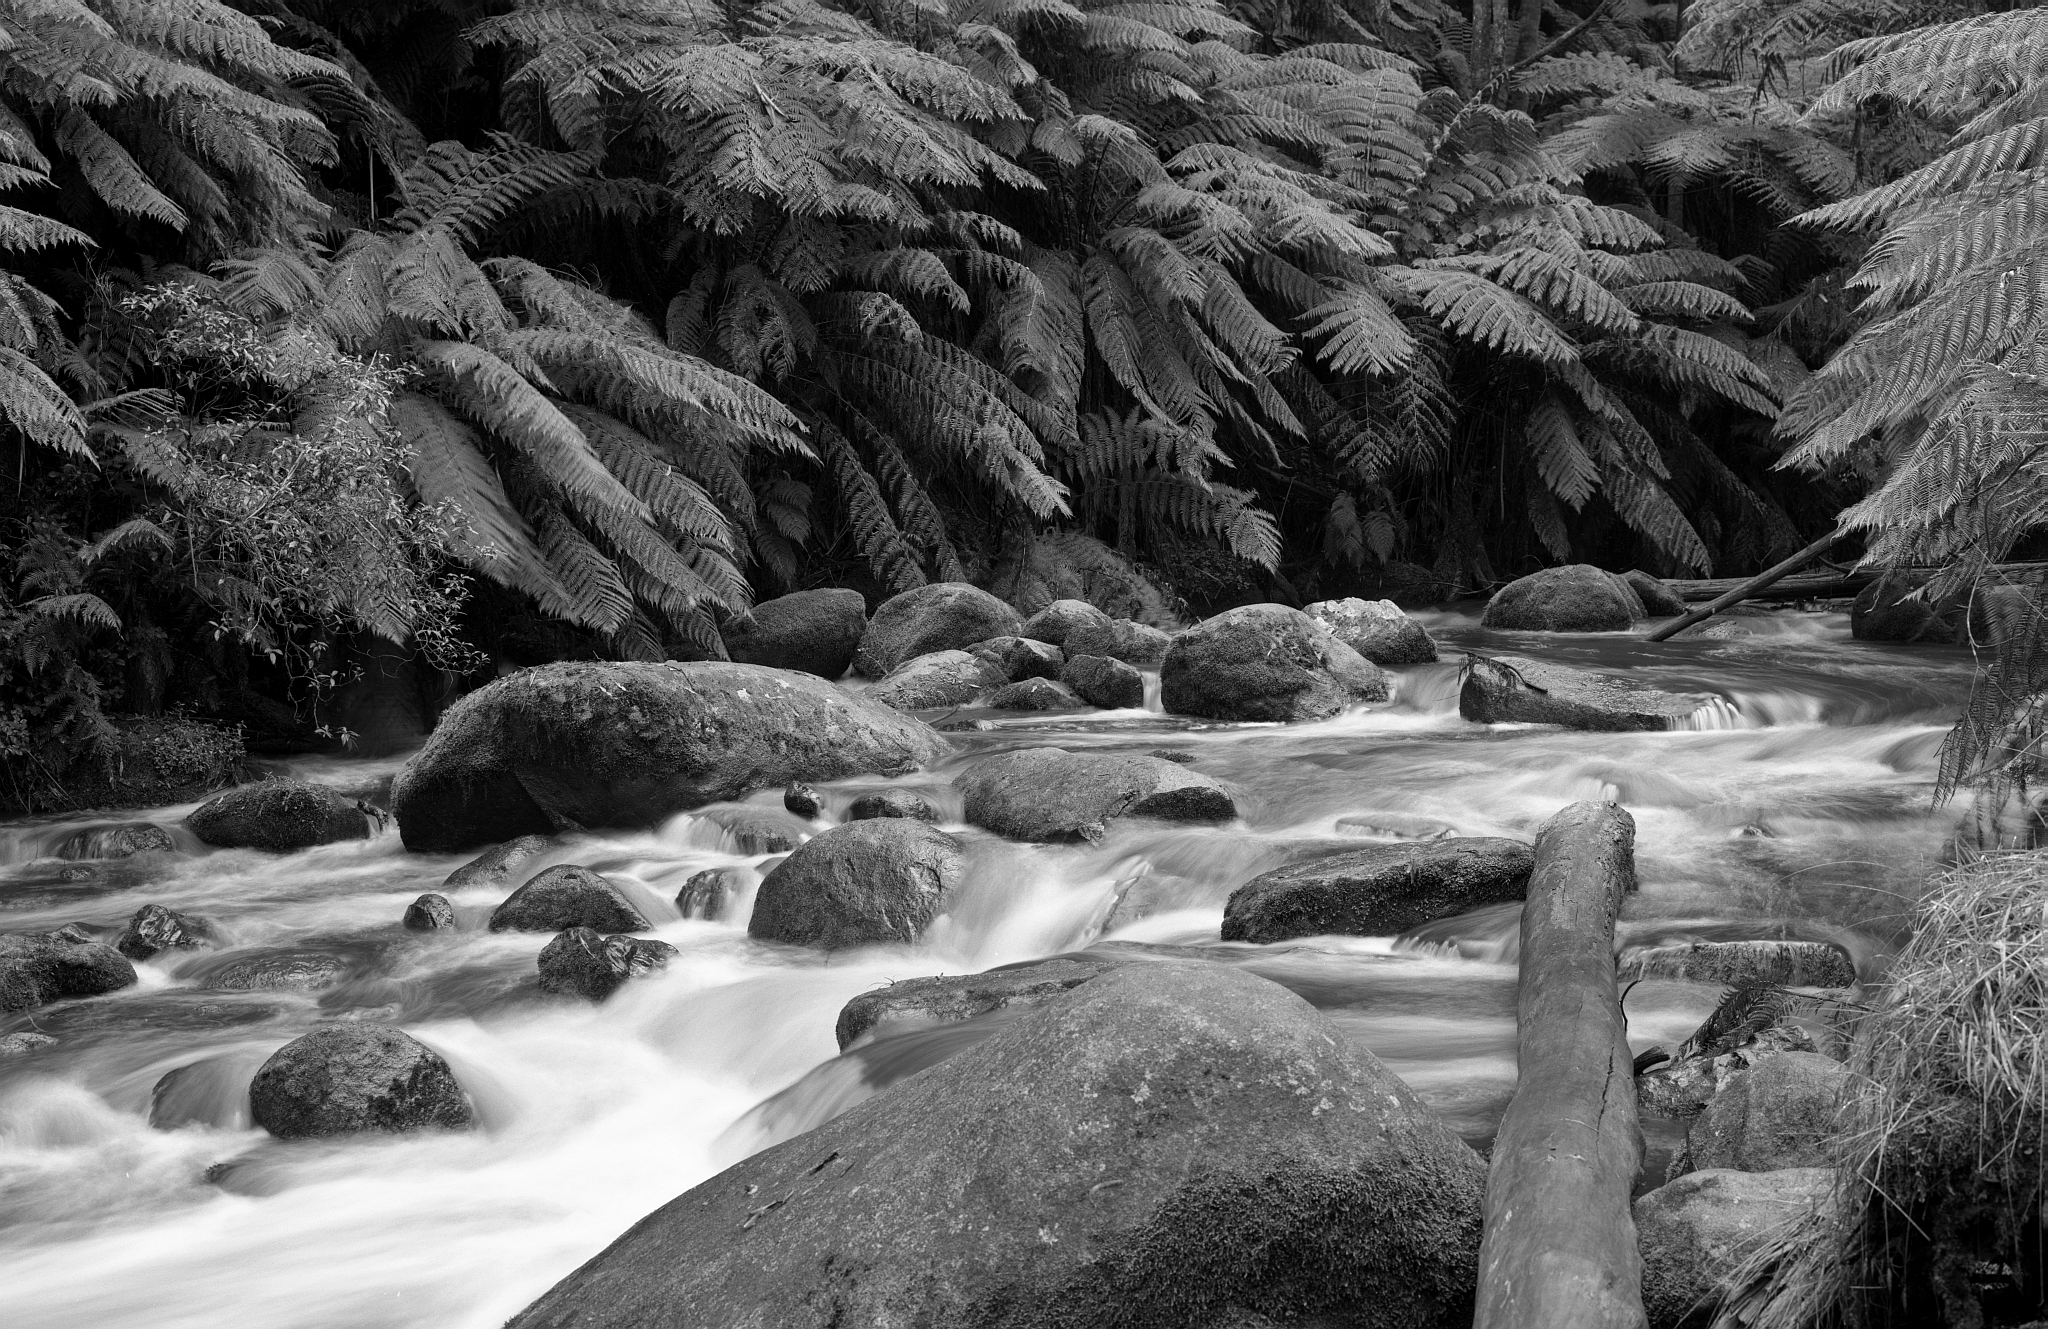 120007_Tooronga_River_FP4_150_8mm_shift_2_Second_f22_008_web.jpg